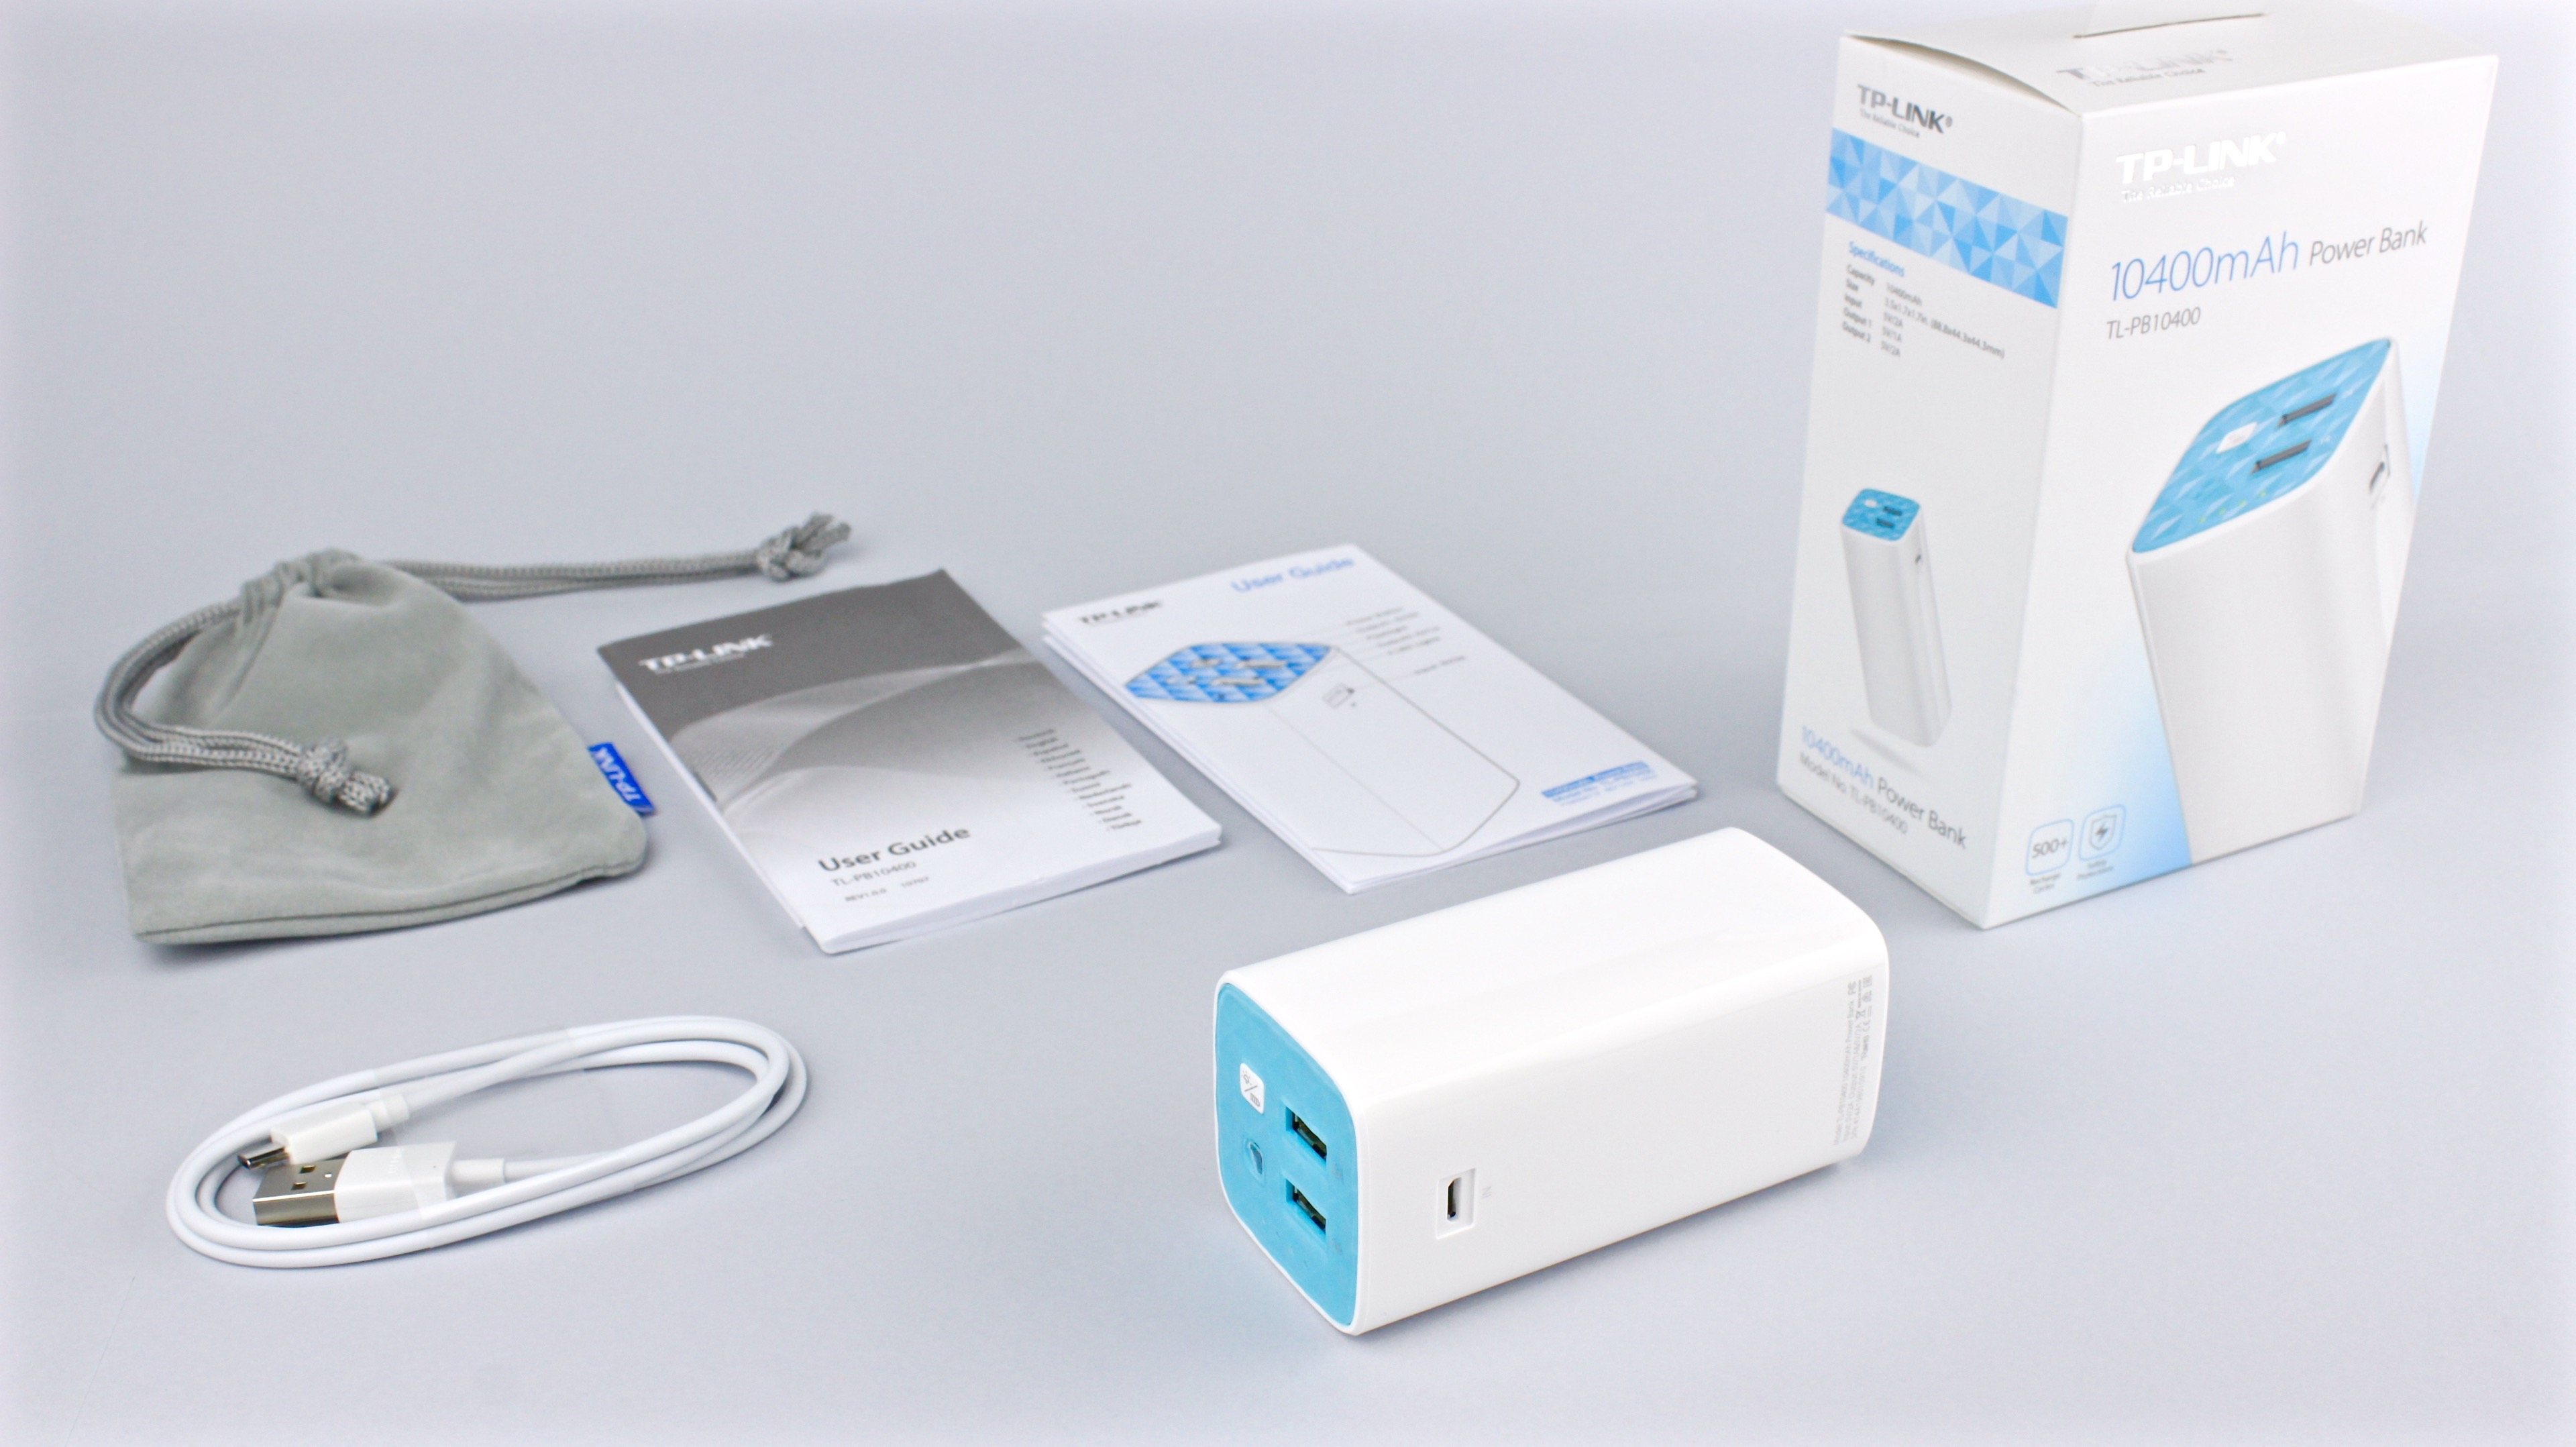 TL-PB10400: High capacity Power Bank from TP-Link